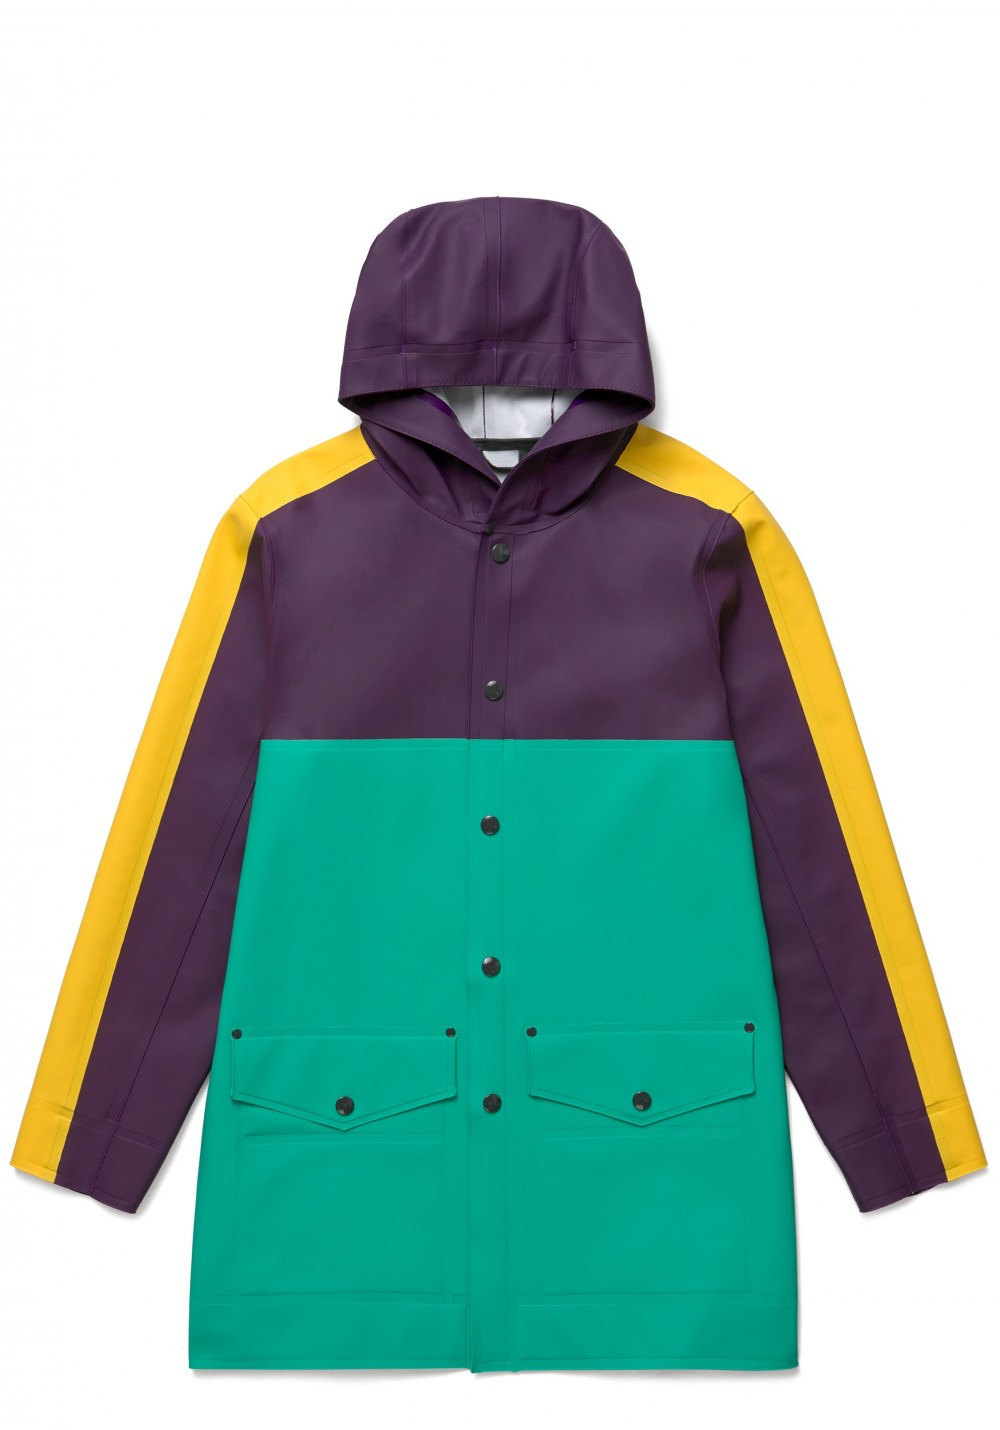 01 Stutterheim for Marni SS18_Man_BlockCoat_EmeraldGreen_Product